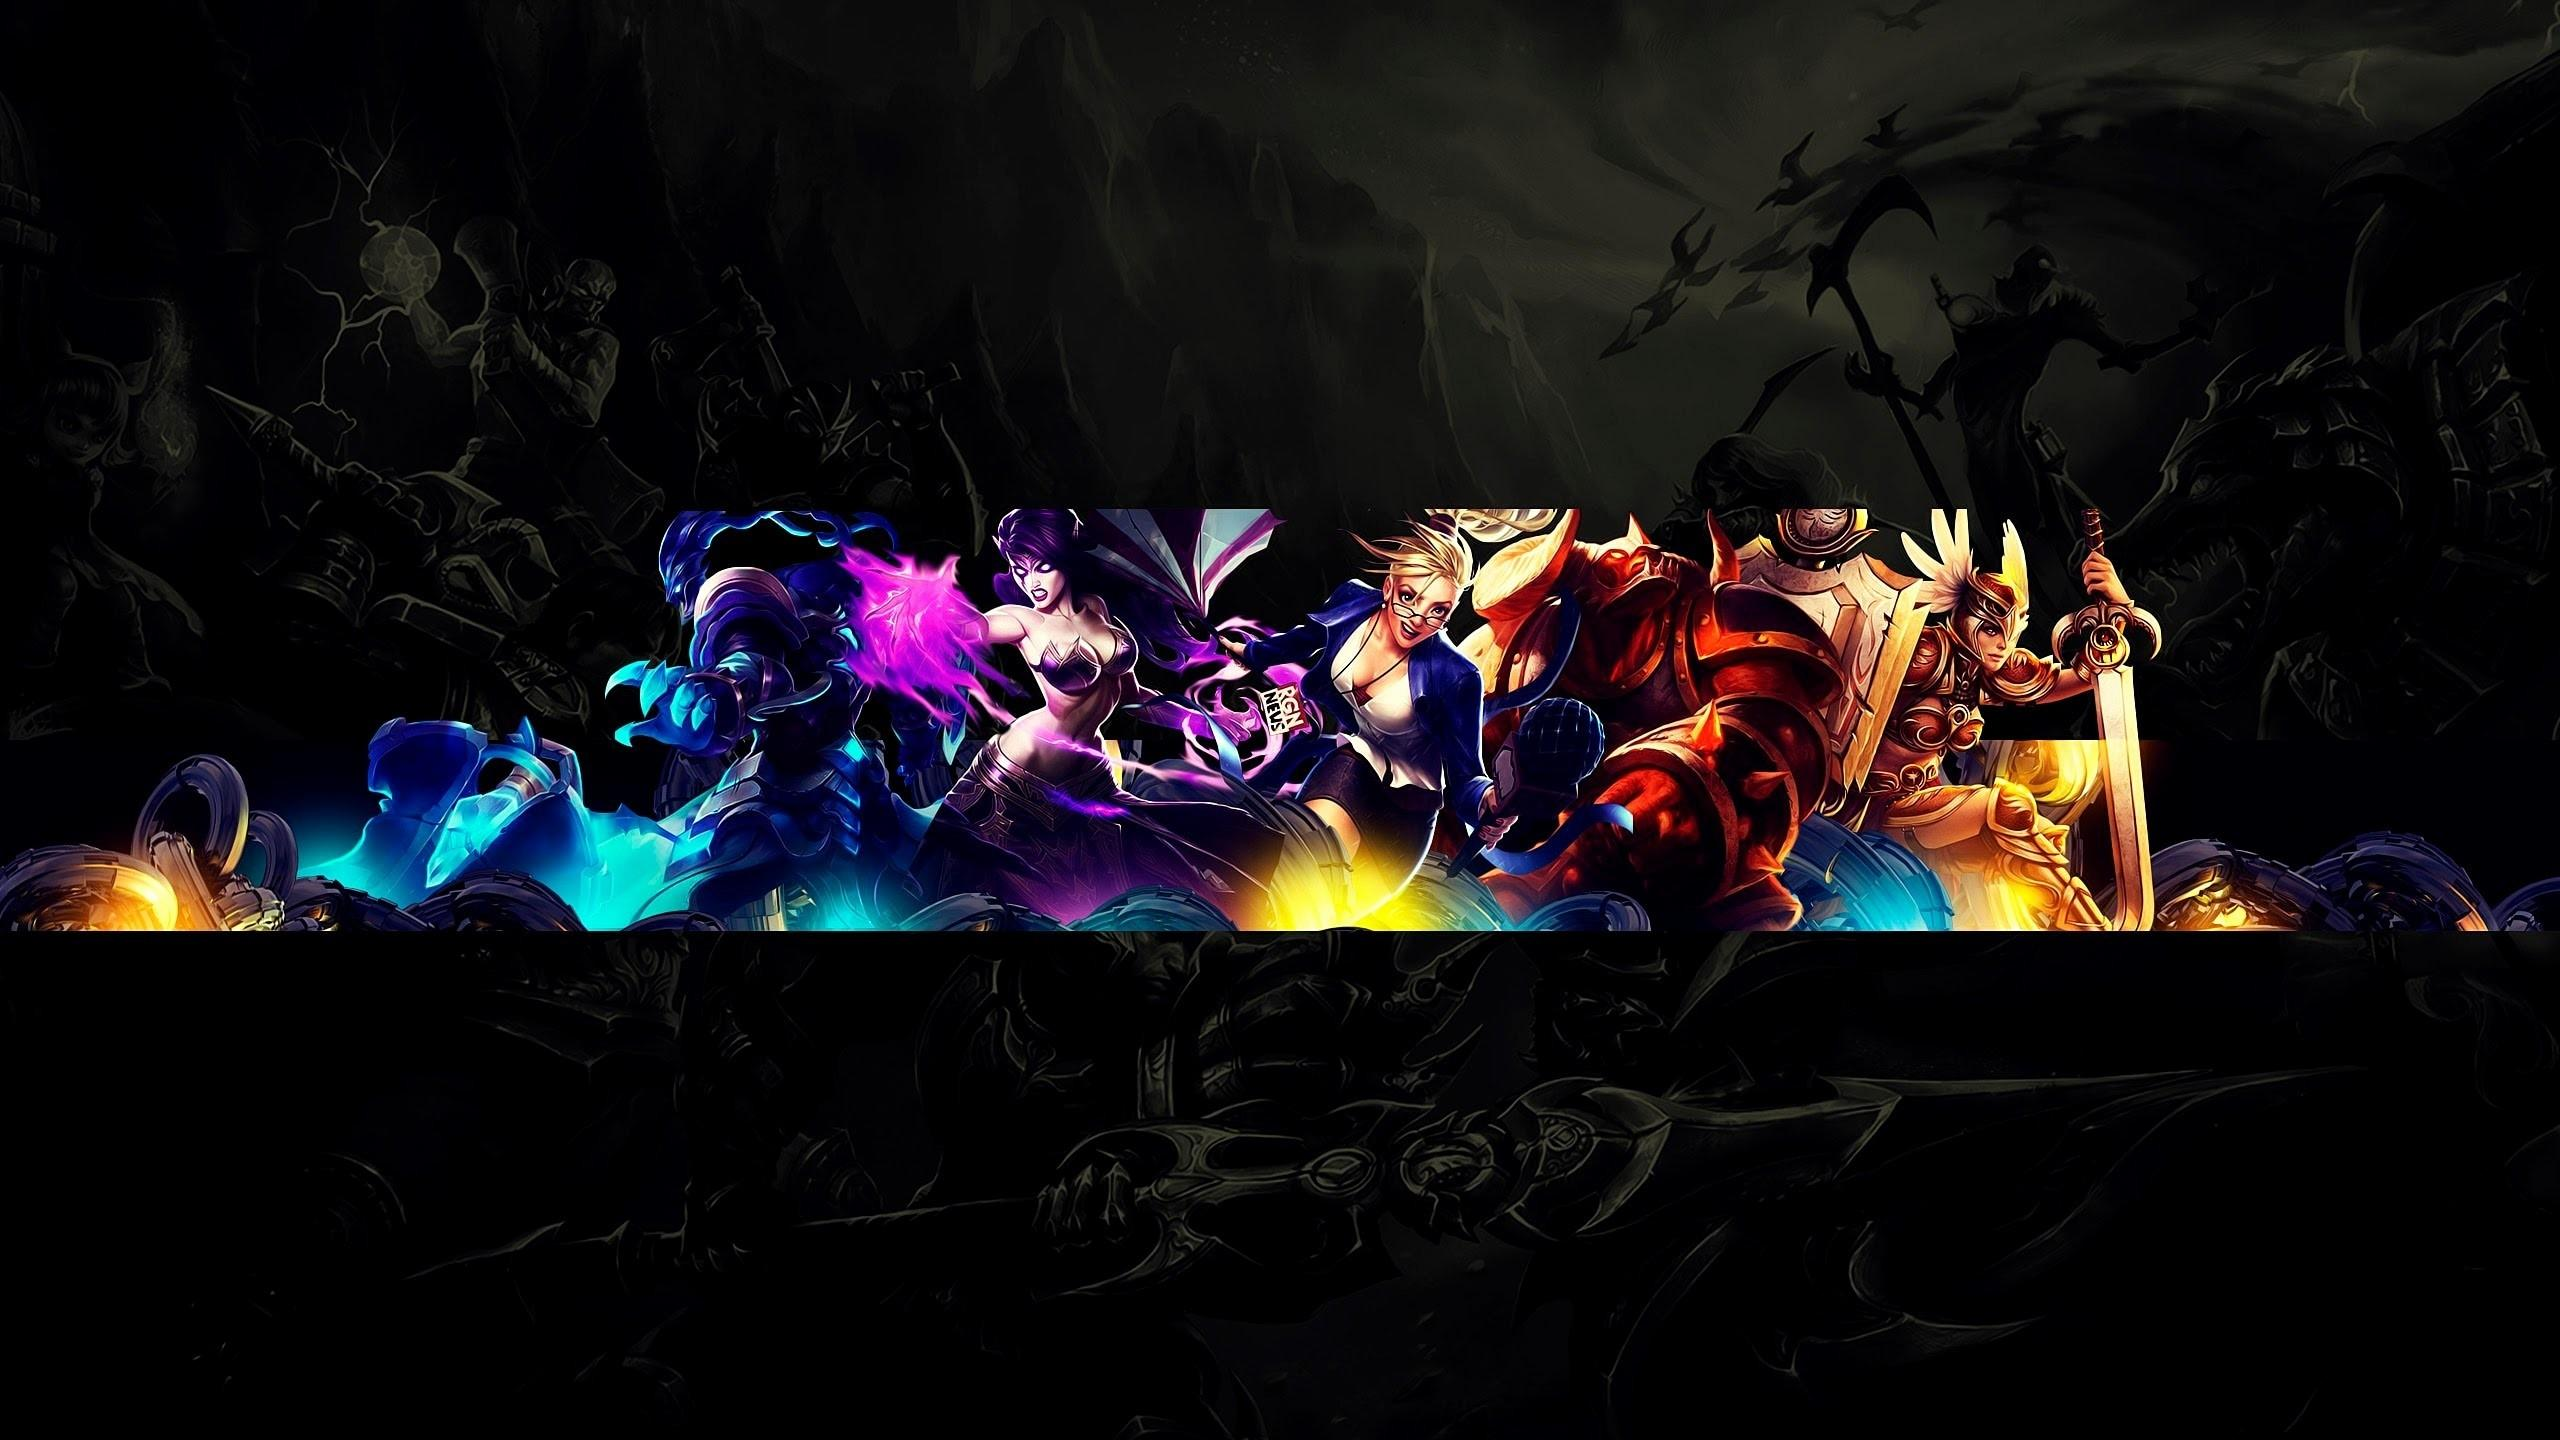 At the minimum dimension, the safe area for text and logos: Banner Anime Wallpapers Wallpaper Cave